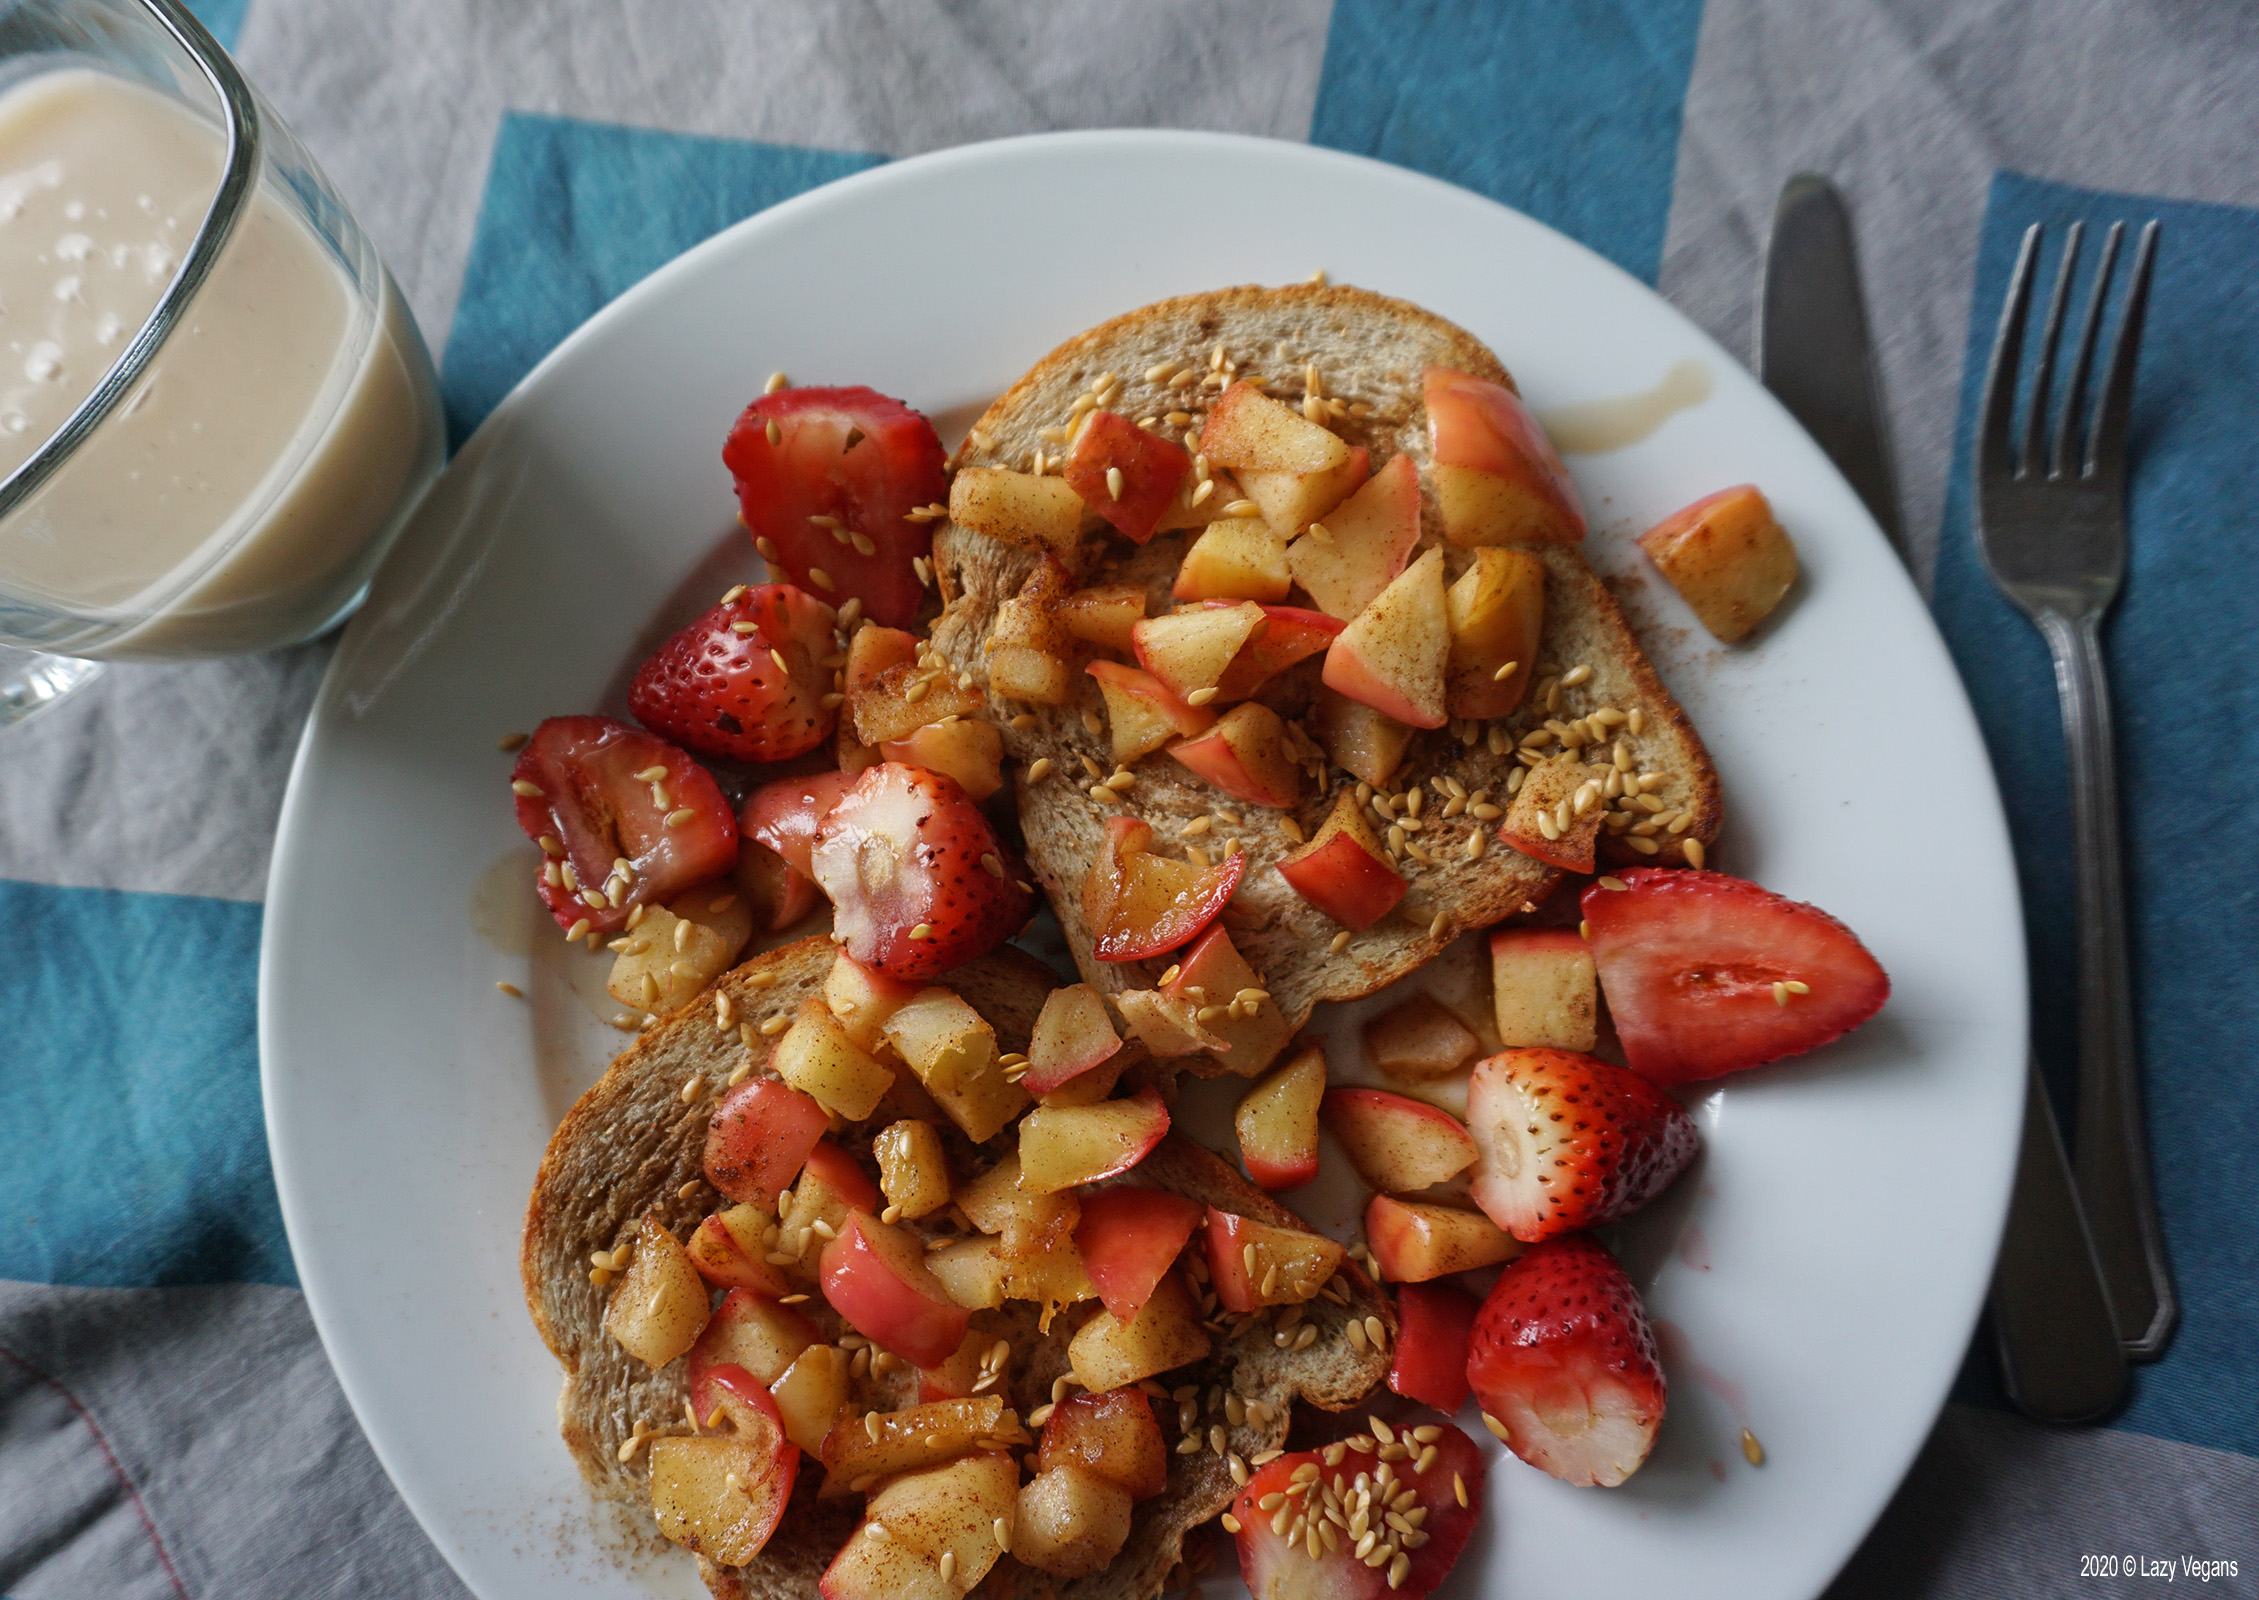 caramelized apple and berries on coconut toast with eggnog